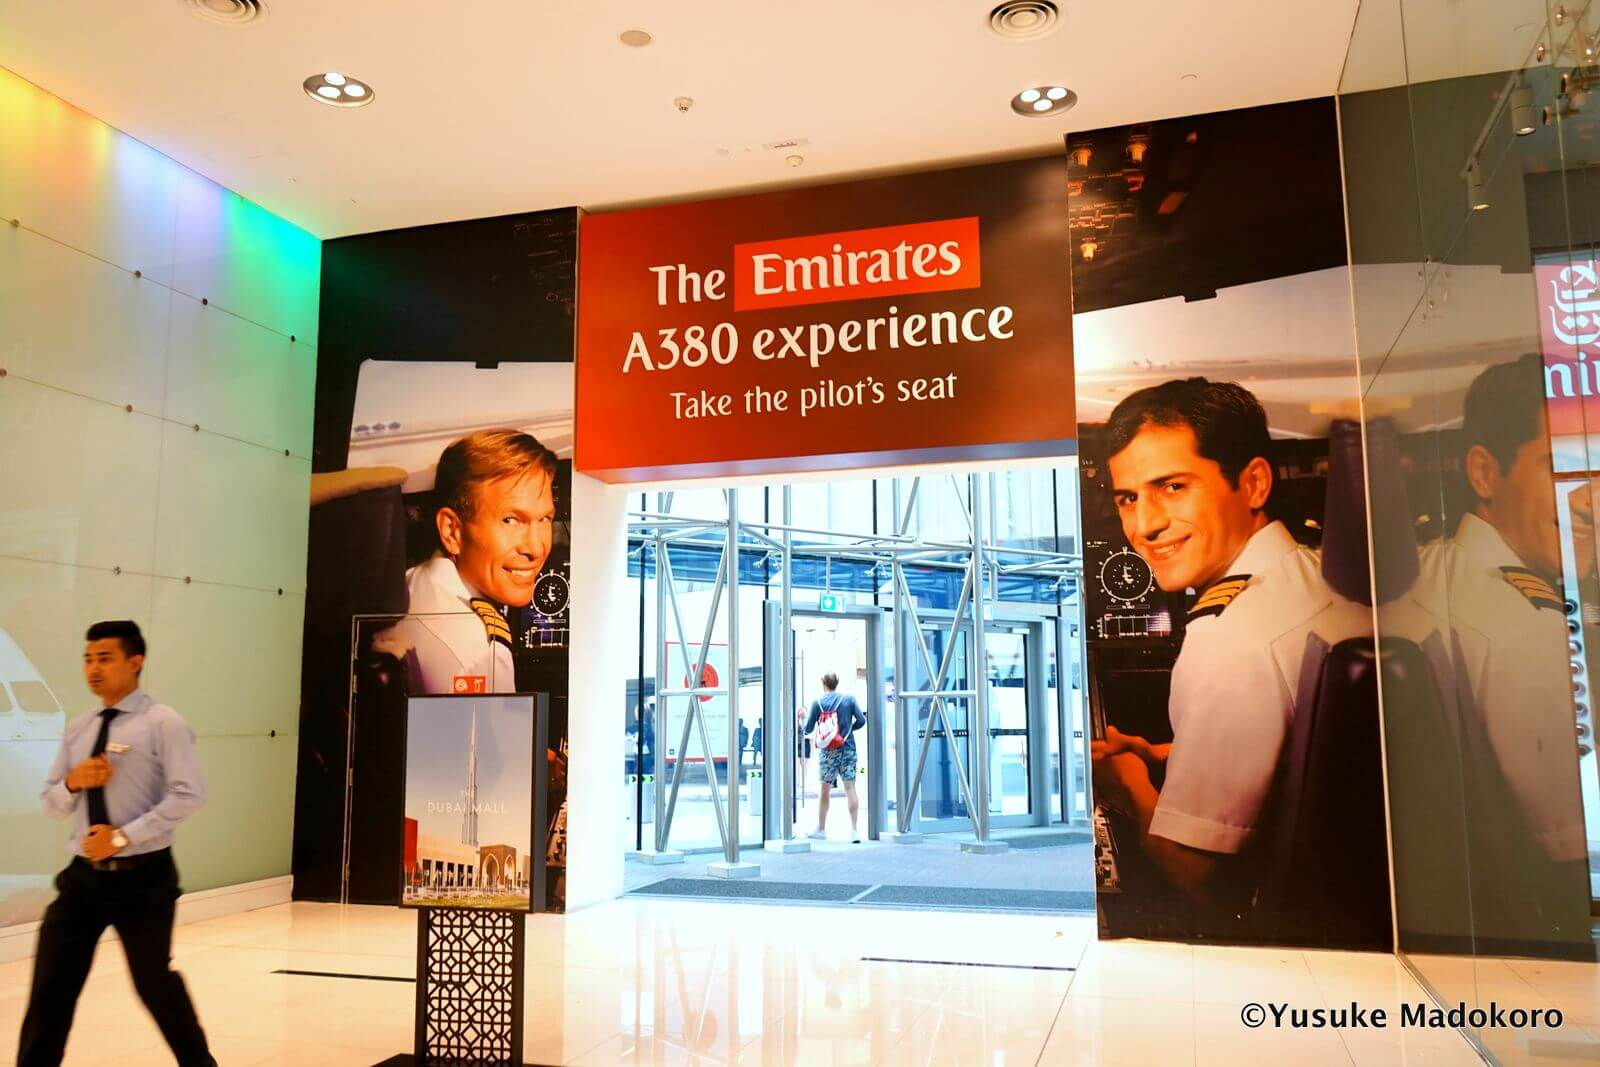 The Emirates A380 experienceの入り口